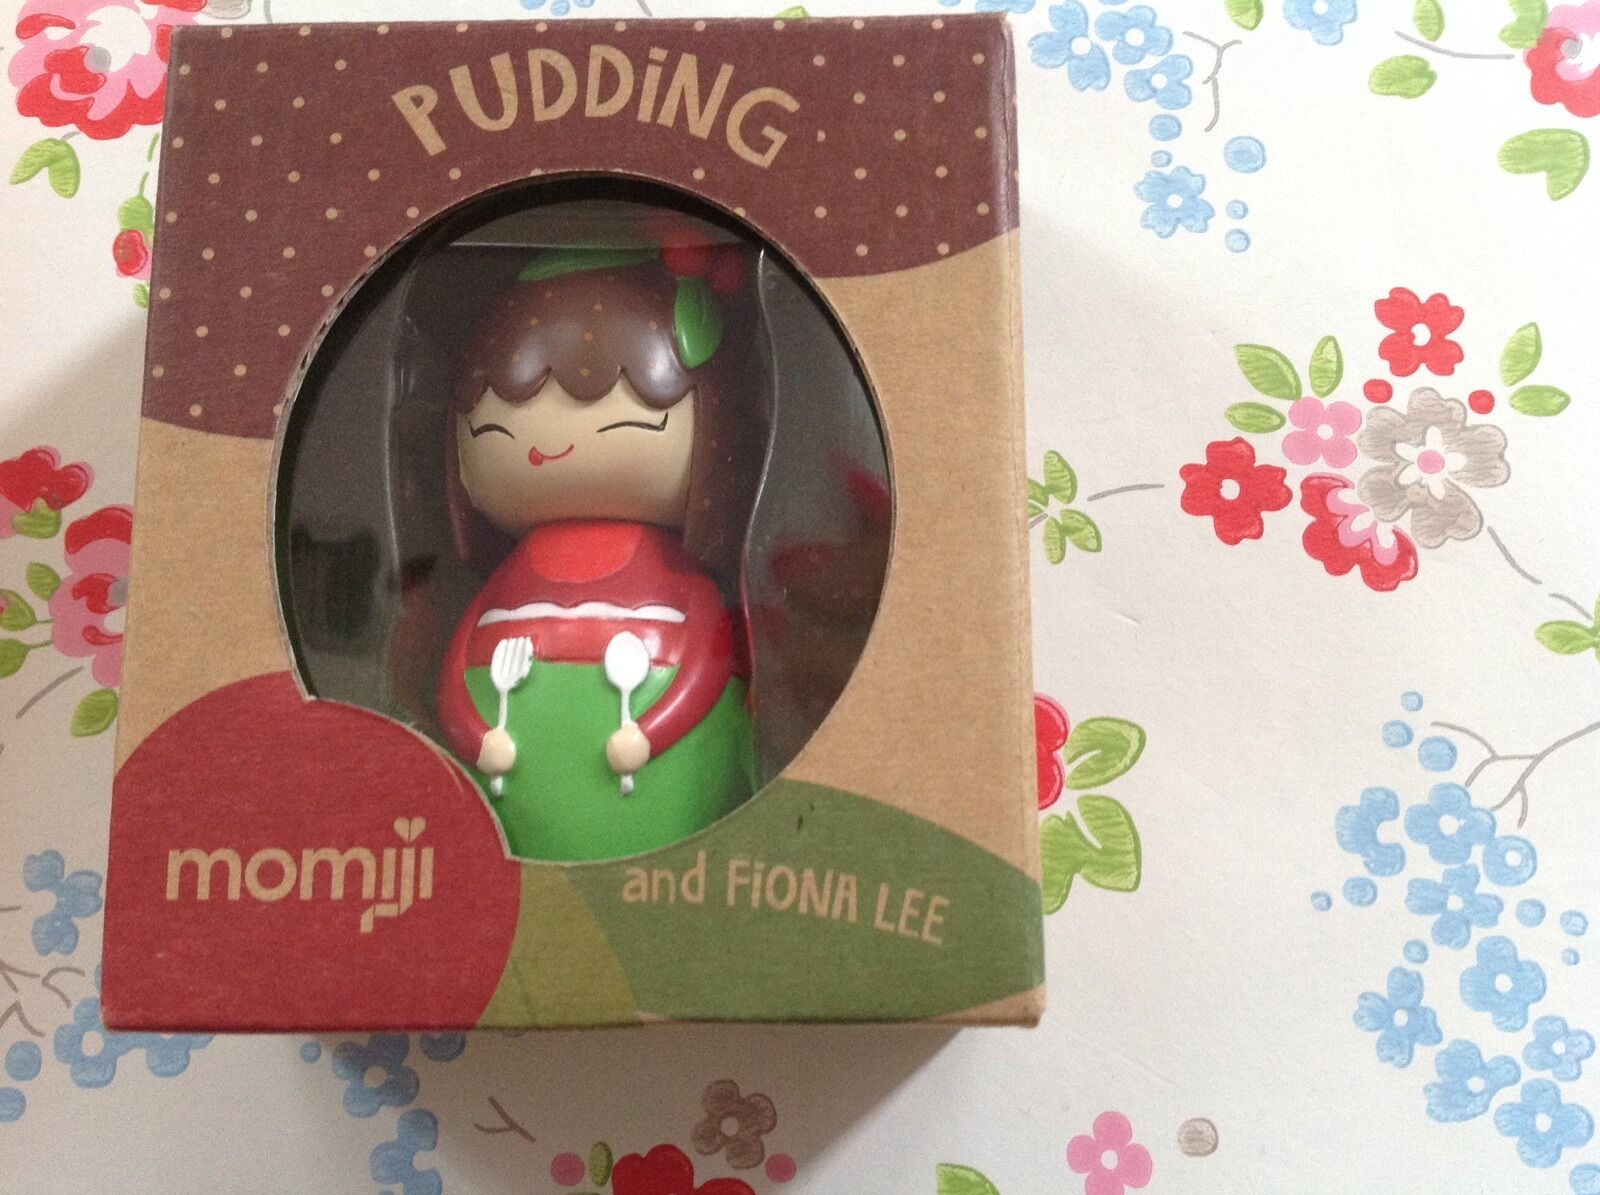 NEW ⭐️MOMIJI⭐️CHRISTMAS PUDDING DOLL⭐️by FIONA LEE⭐️